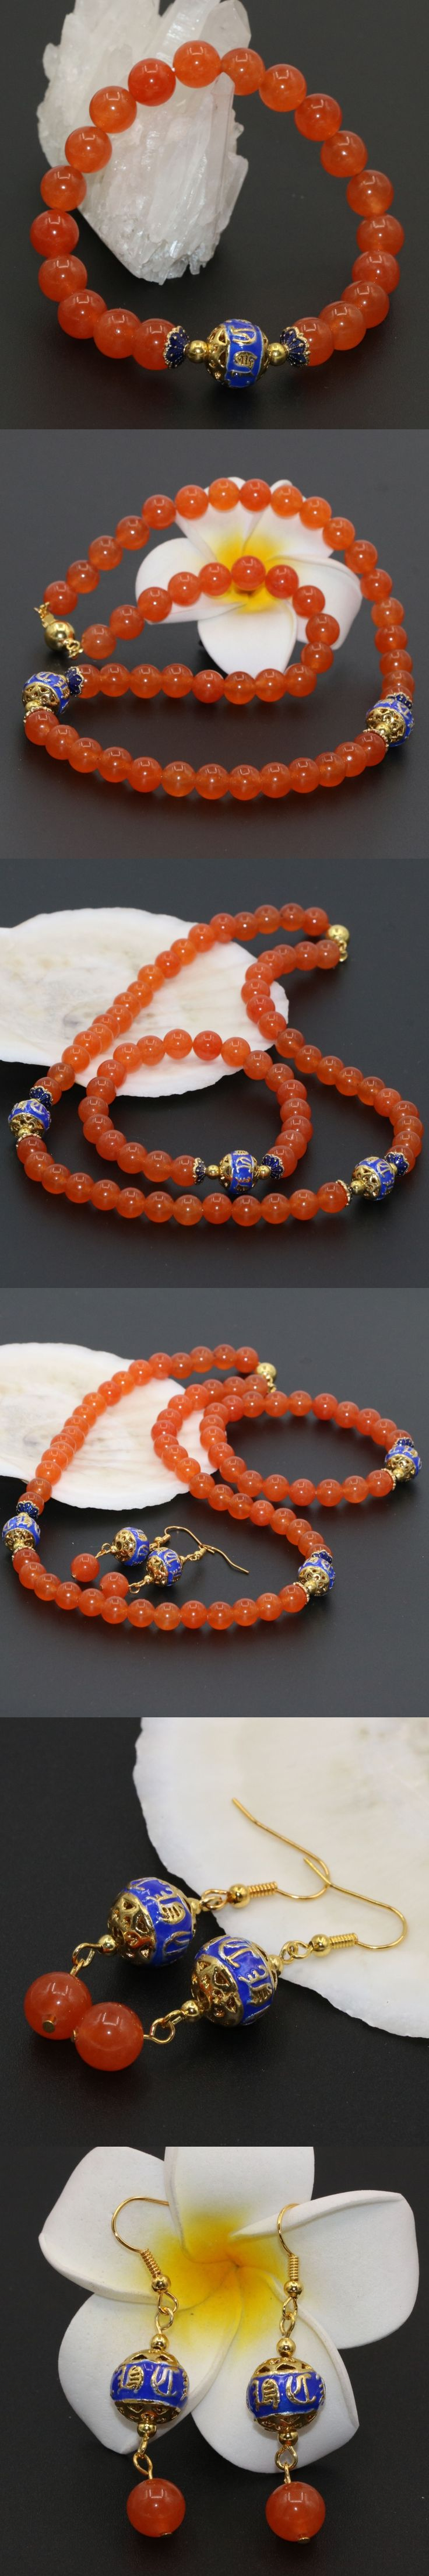 Classical design fashion 8mm orange stone chalcedony round beads necklaces bracelet earrings sets for women charms jewelry B2679